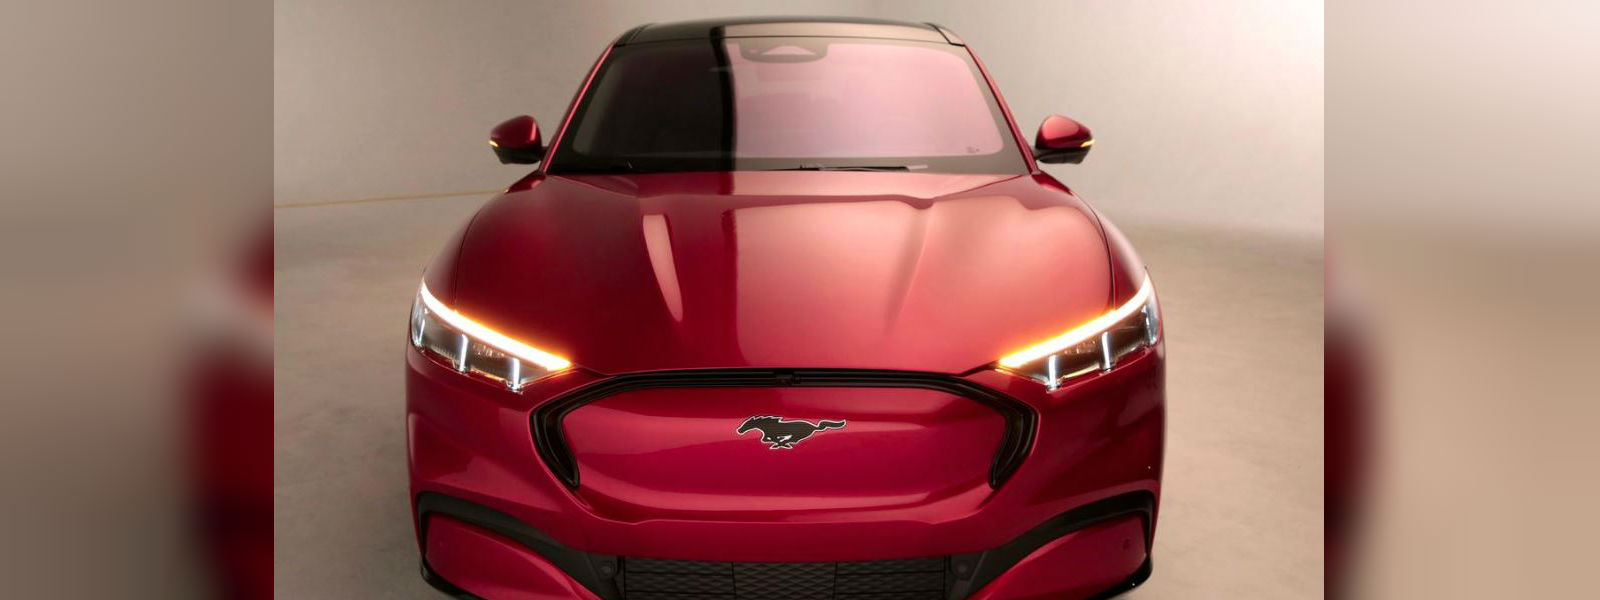 Ford bets on an electric Mustang to charge its turnaround